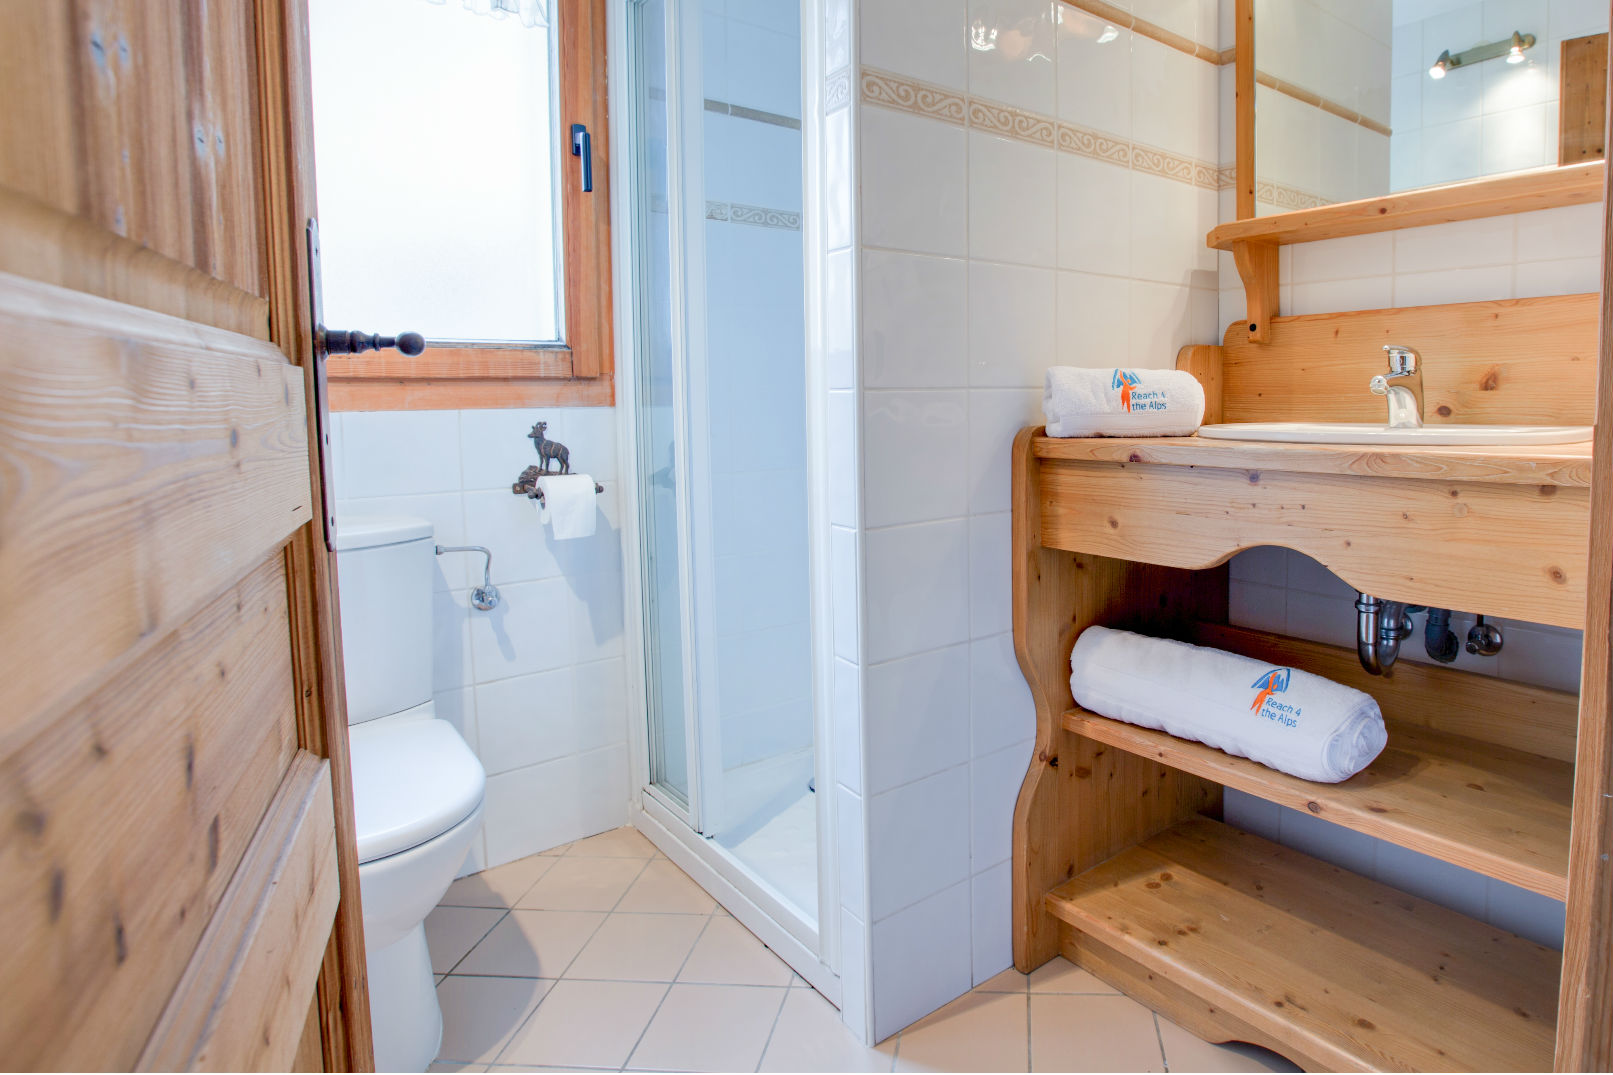 Chalet Martinet - Summer Self Catering Chalet in Les Gets